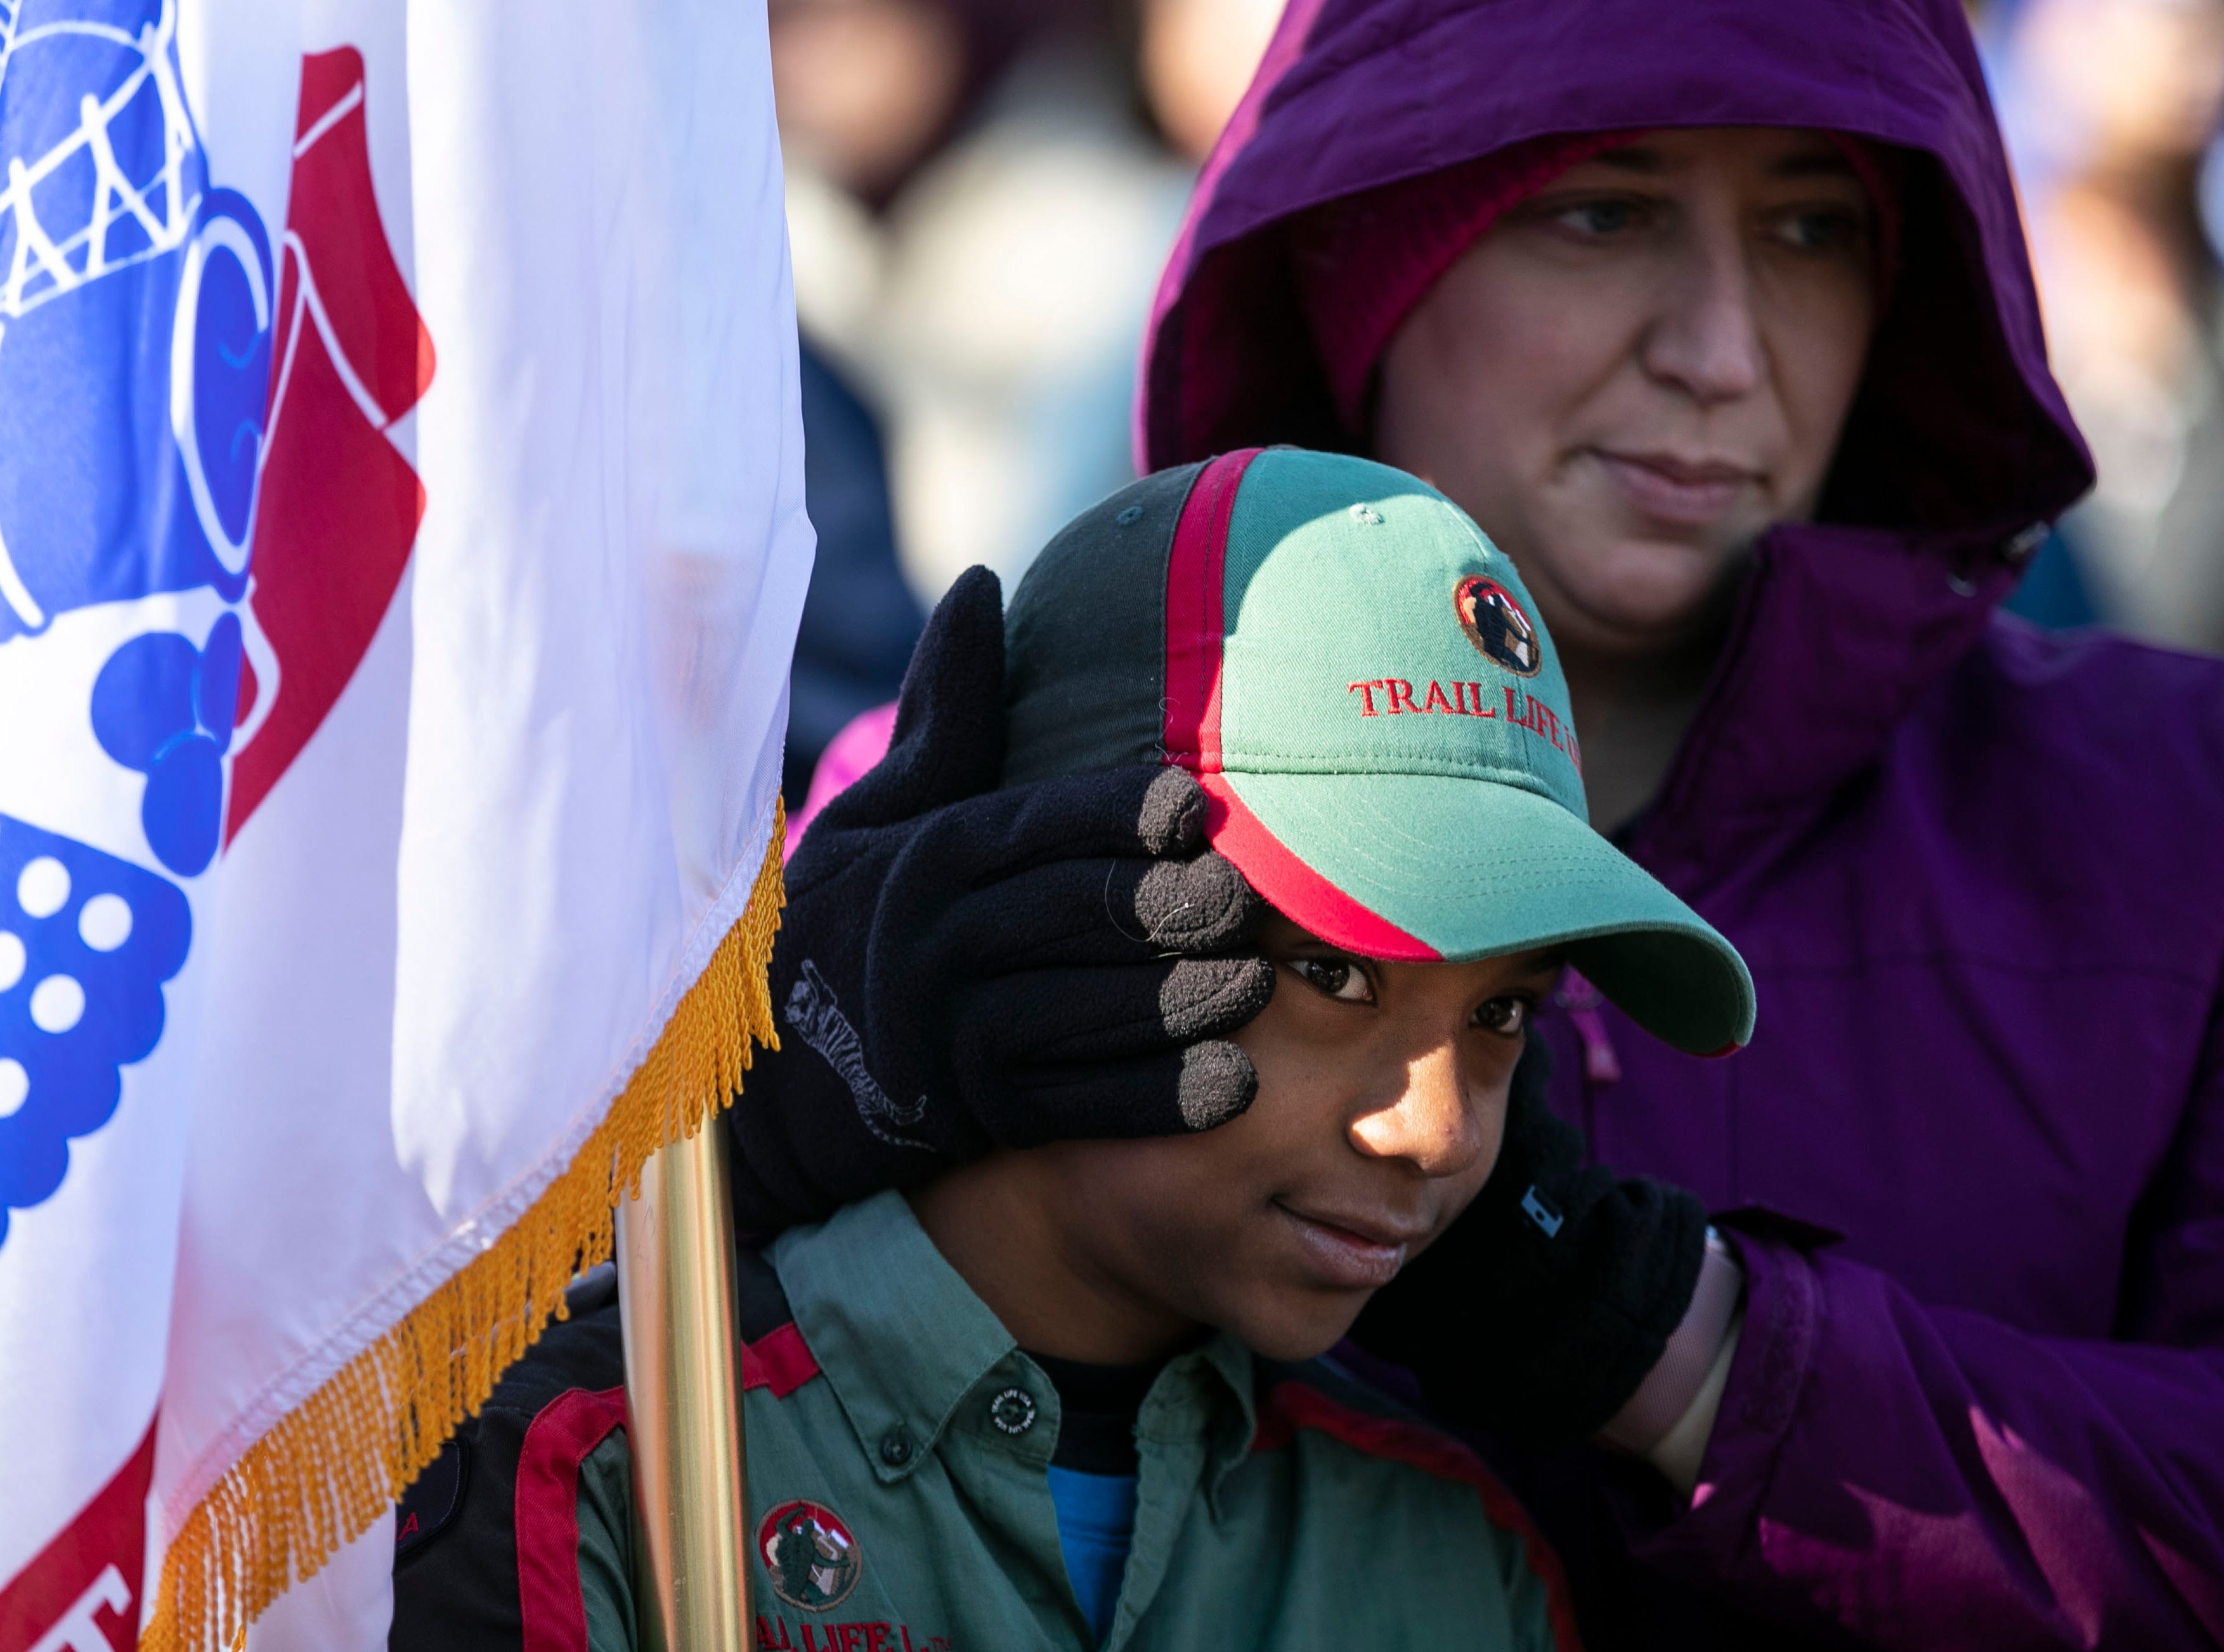 Daryn Kennedy tries to keep the ears of her son Jake warm before the start of a short walk to Cave Hill Cemetery as a remembrance to military veterans during a Flags 4 Vets event Saturday, Nov. 10, 2018. Veterans Day is Sunday, Nov. 11. Around 250 volunteers placed nearly 7,500 flags on military veteran gravesites.